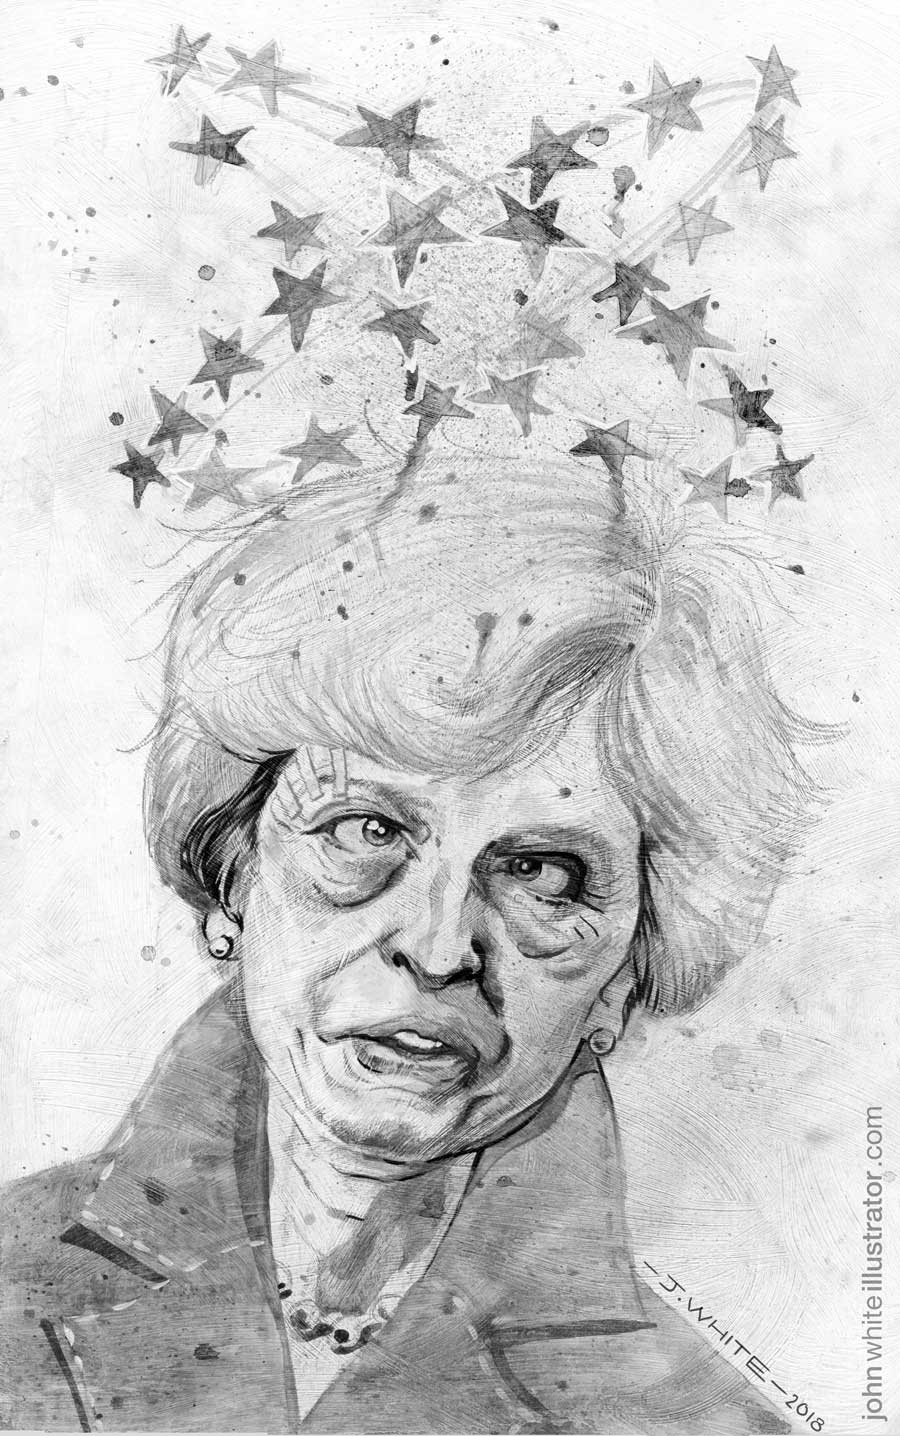 black and white editorial illustration of theresa may and brexit negotiations